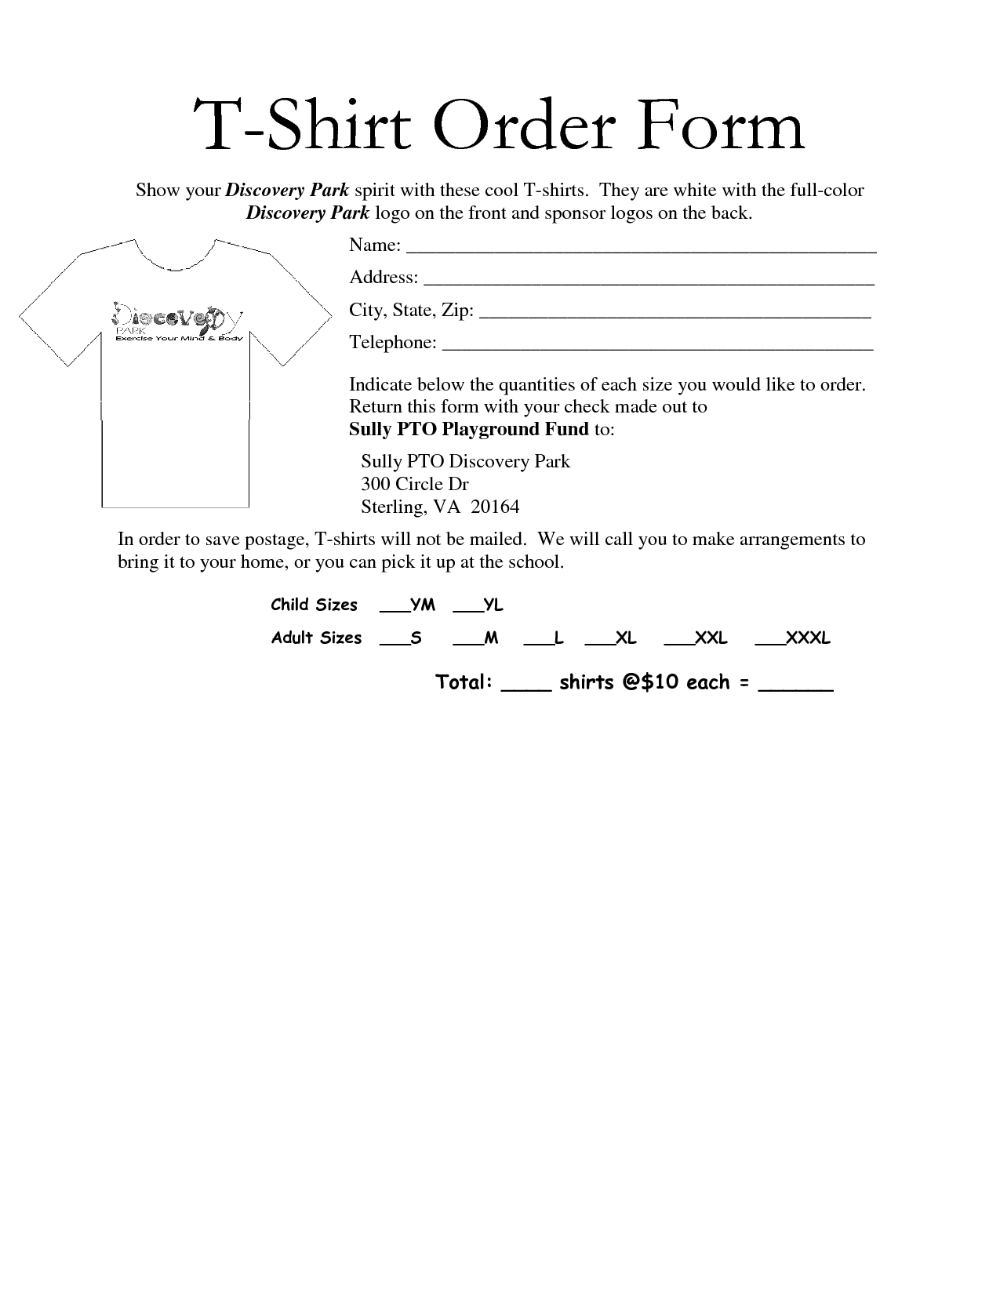 Awesome Tshirt Order Form Template Free Images Projects To Try Inside Donation Card Te Order Form Template Order Form Template Free Business Card Template Word